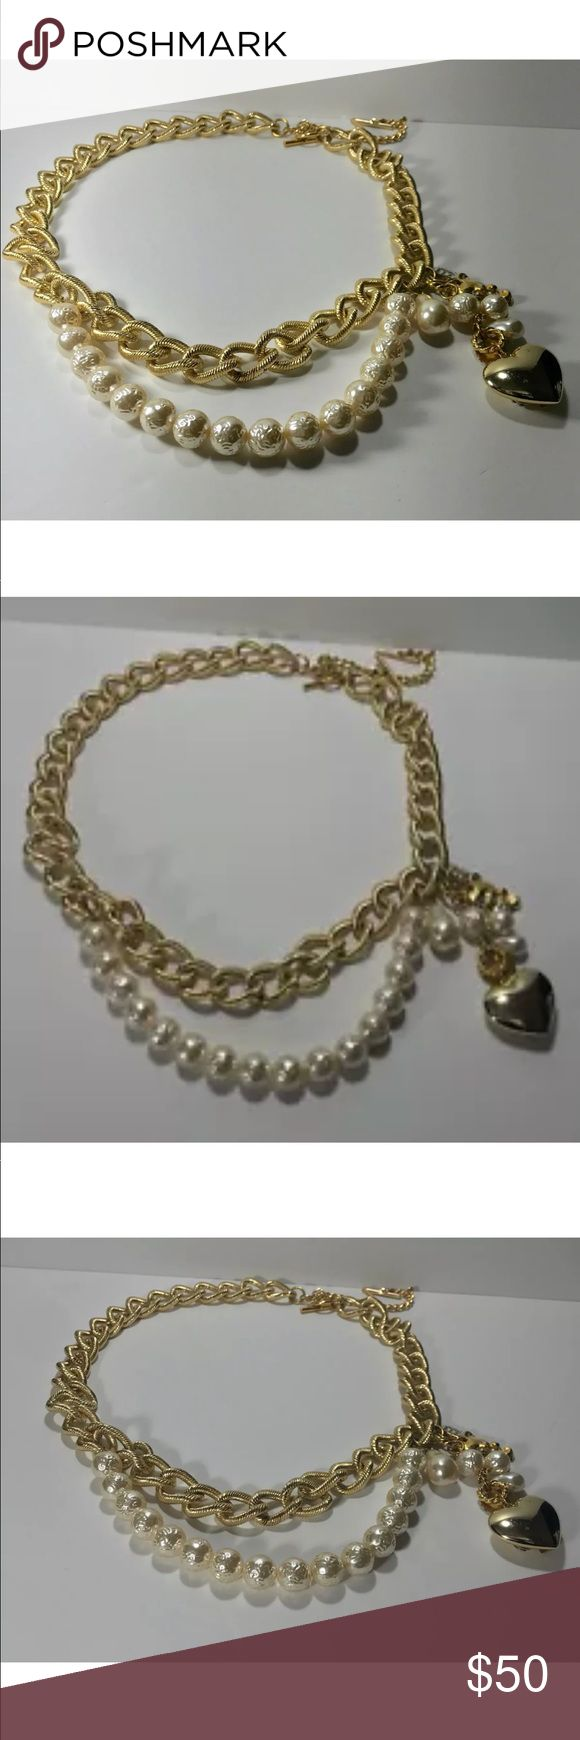 """Chunky gold chain belt w/ pearls and lucky charms This piece is a chunky gold chain belt with pearl accents and hanging lucky charms including a heart, four leaf clover and teddy bear.  It is unmarked  Closes with a toggle and there are three so it is adjustable Total length is  35"""" Can close at 32 and 29"""" Chain is .75"""" wide  Excellent condition This is a really nice, substantial piece.    From clean, non-smoking home. Not from thrift or garage sale. My client is the original owner…"""